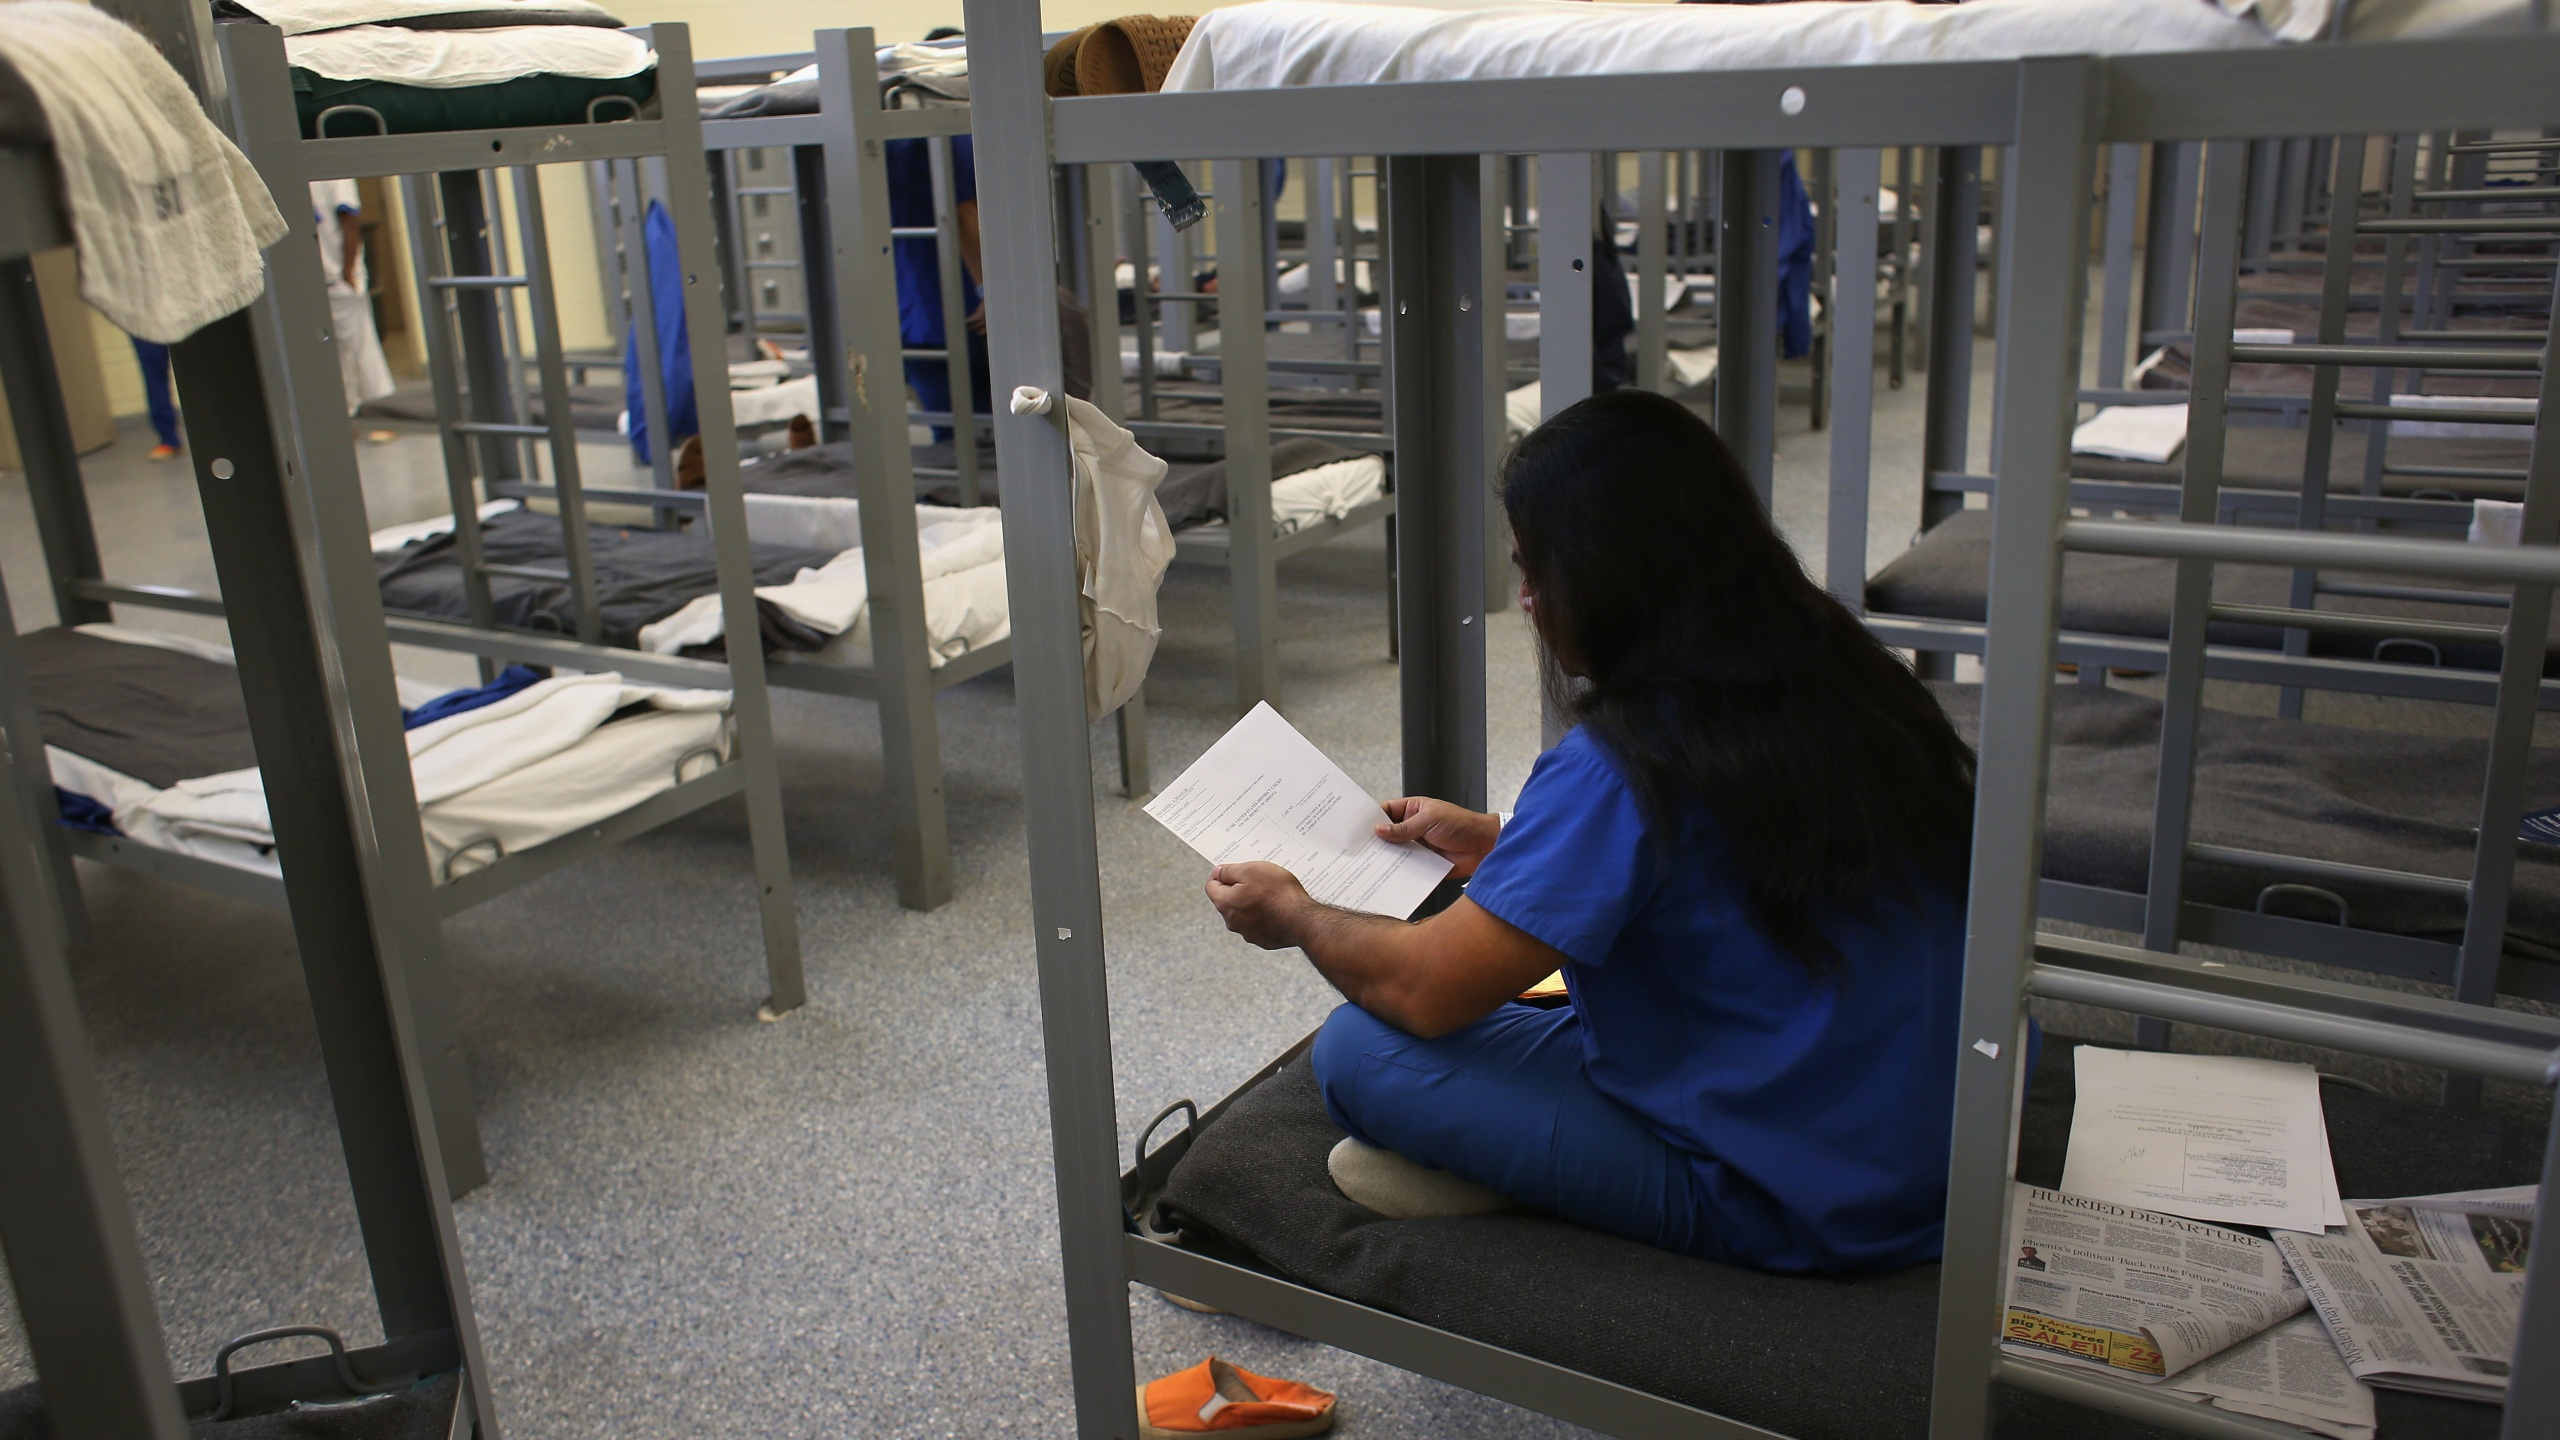 An immigration detainee from Bangladesh reads through his case papers while on his bunk at the Immigration and Customs Enforcement (ICE), detention facility on February 28, 2013 in Florence, Arizona. (John Moore/Getty Images)